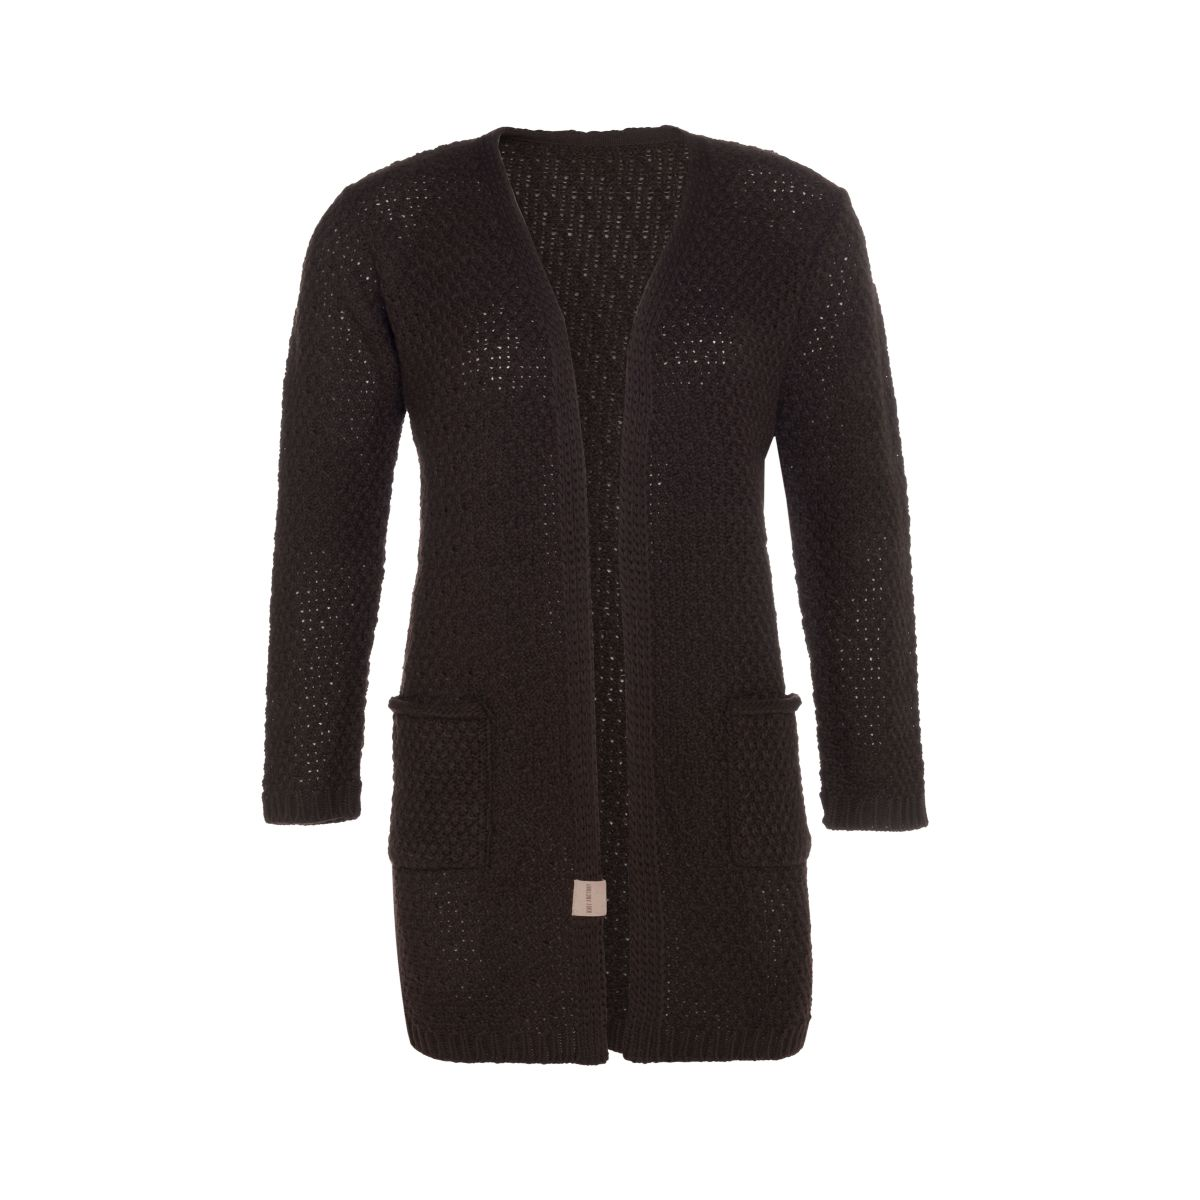 luna knitted cardigan dark brown 4042 with side pockets